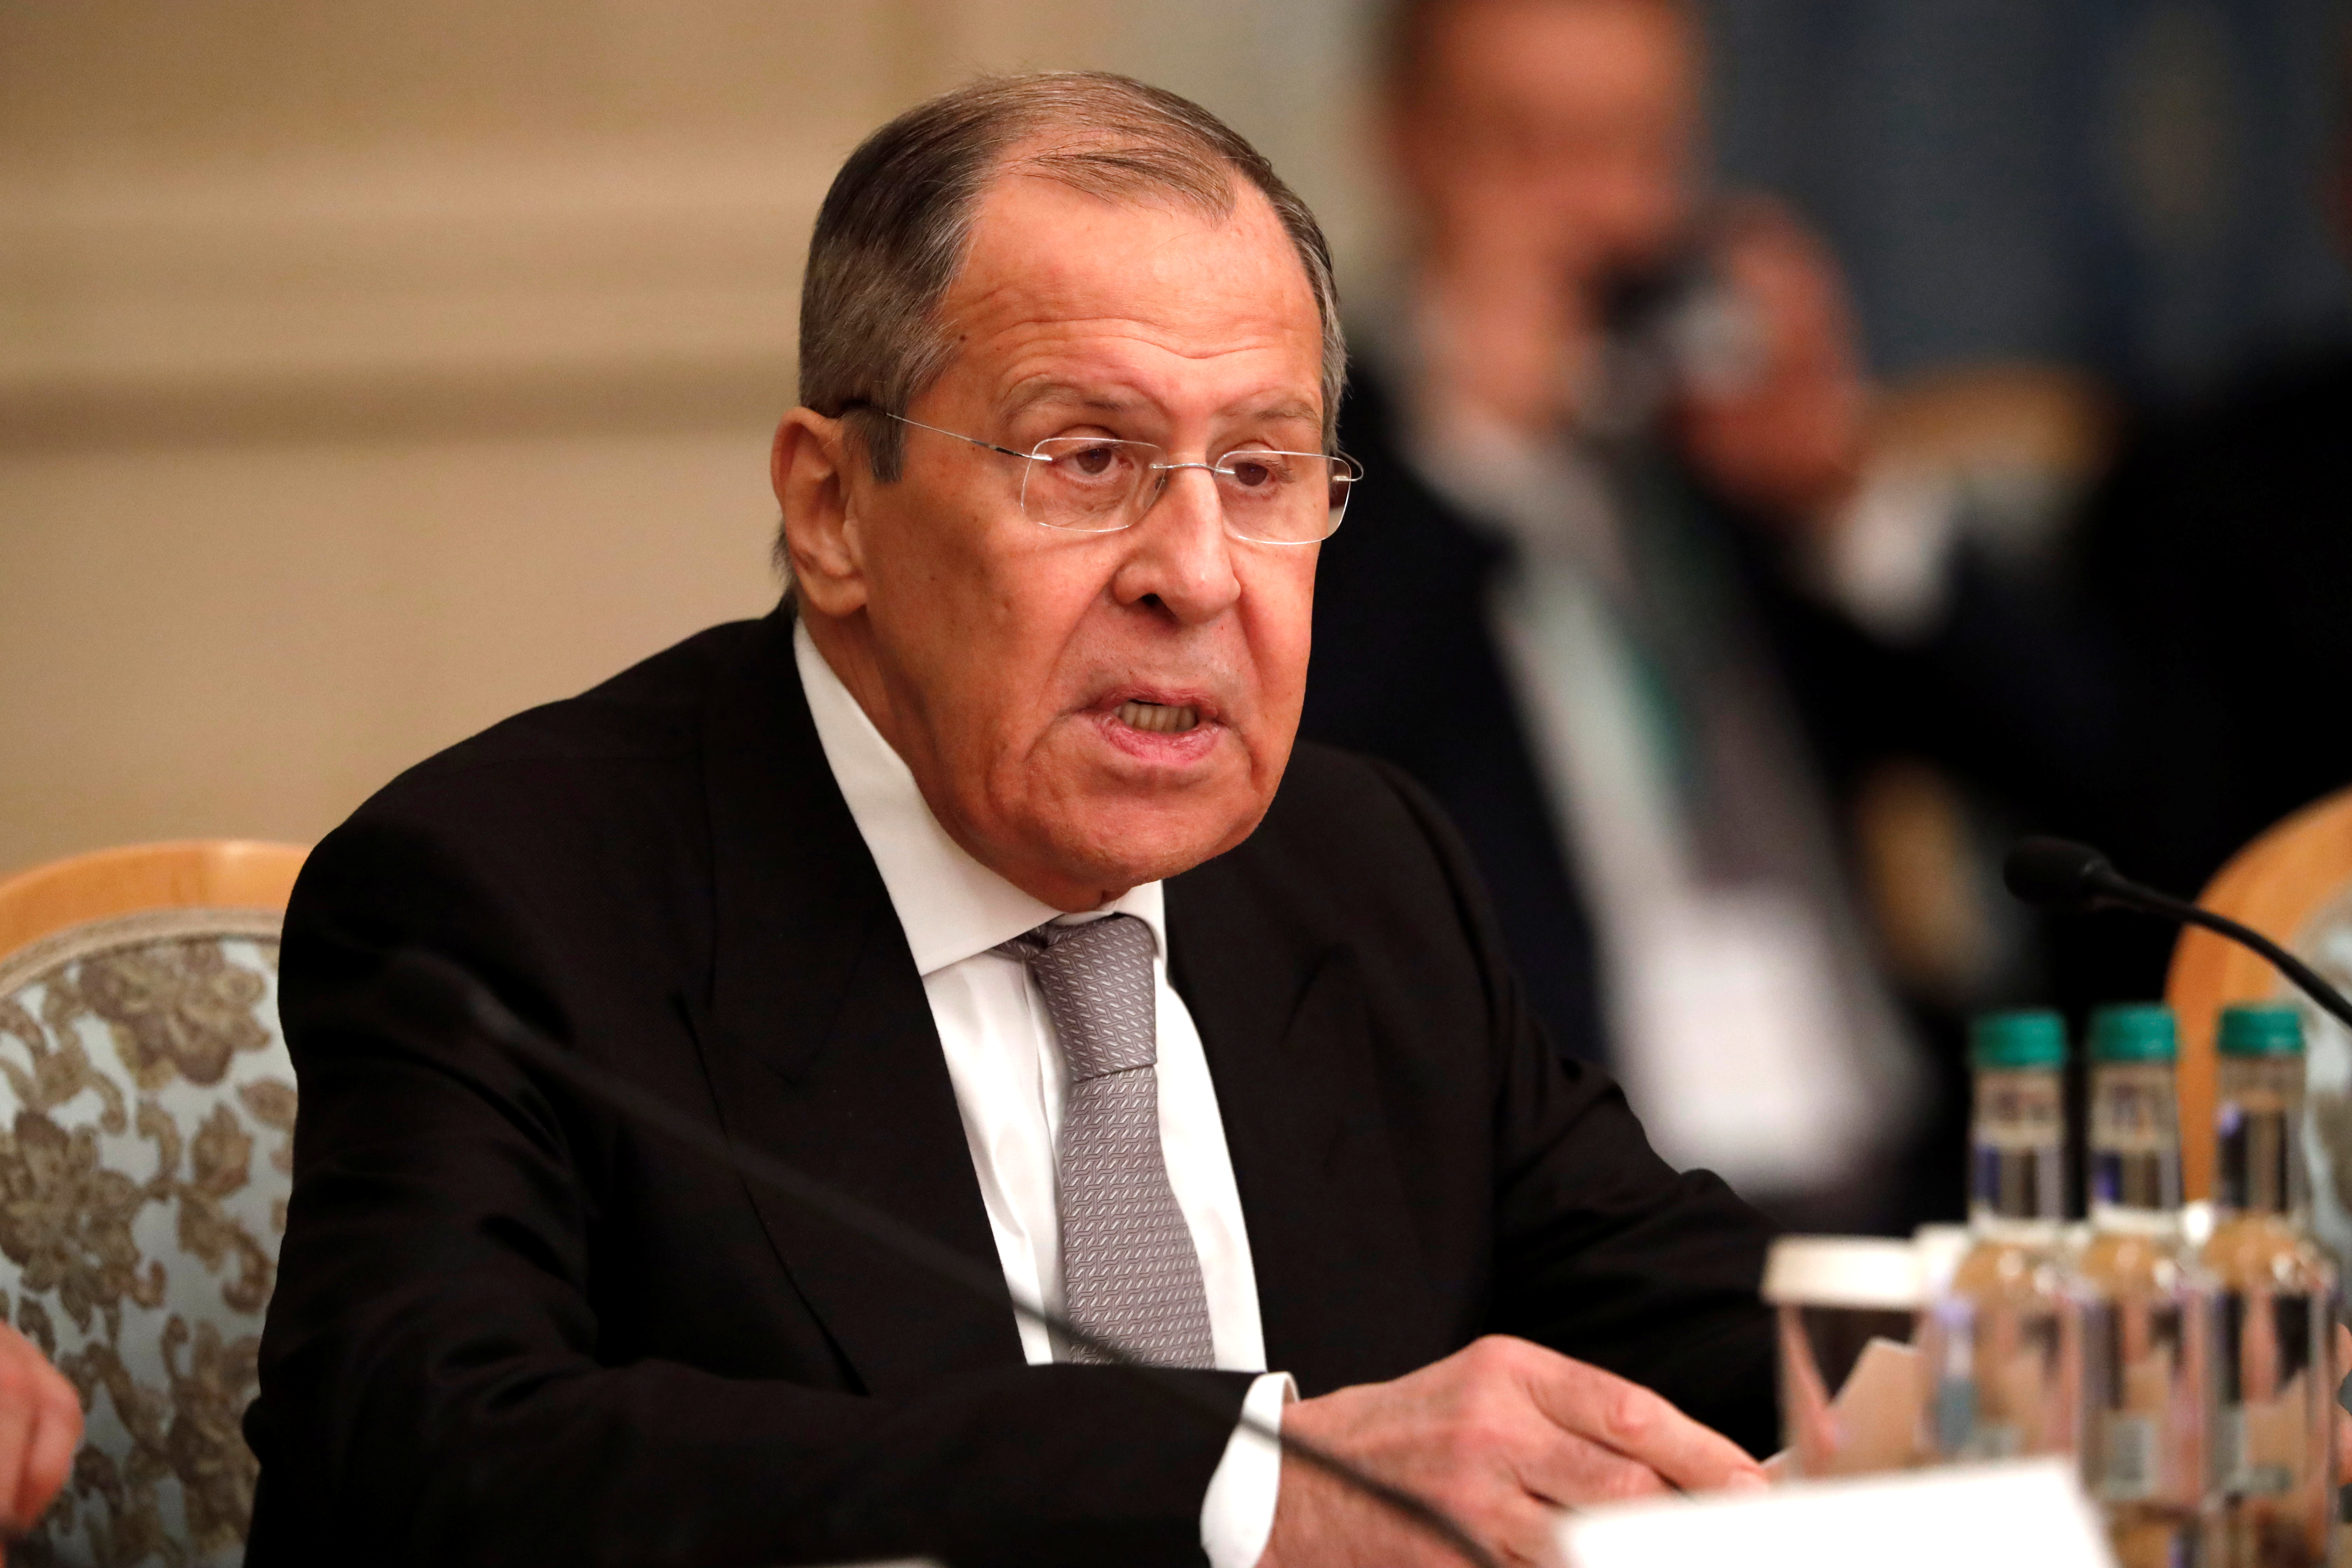 Russia's Foreign Minister Sergei Lavrov delivers a speech at the Afghan peace conference in Moscow, Russia March 18, 2021. Alexander Zemlianichenko/Pool via REUTERS